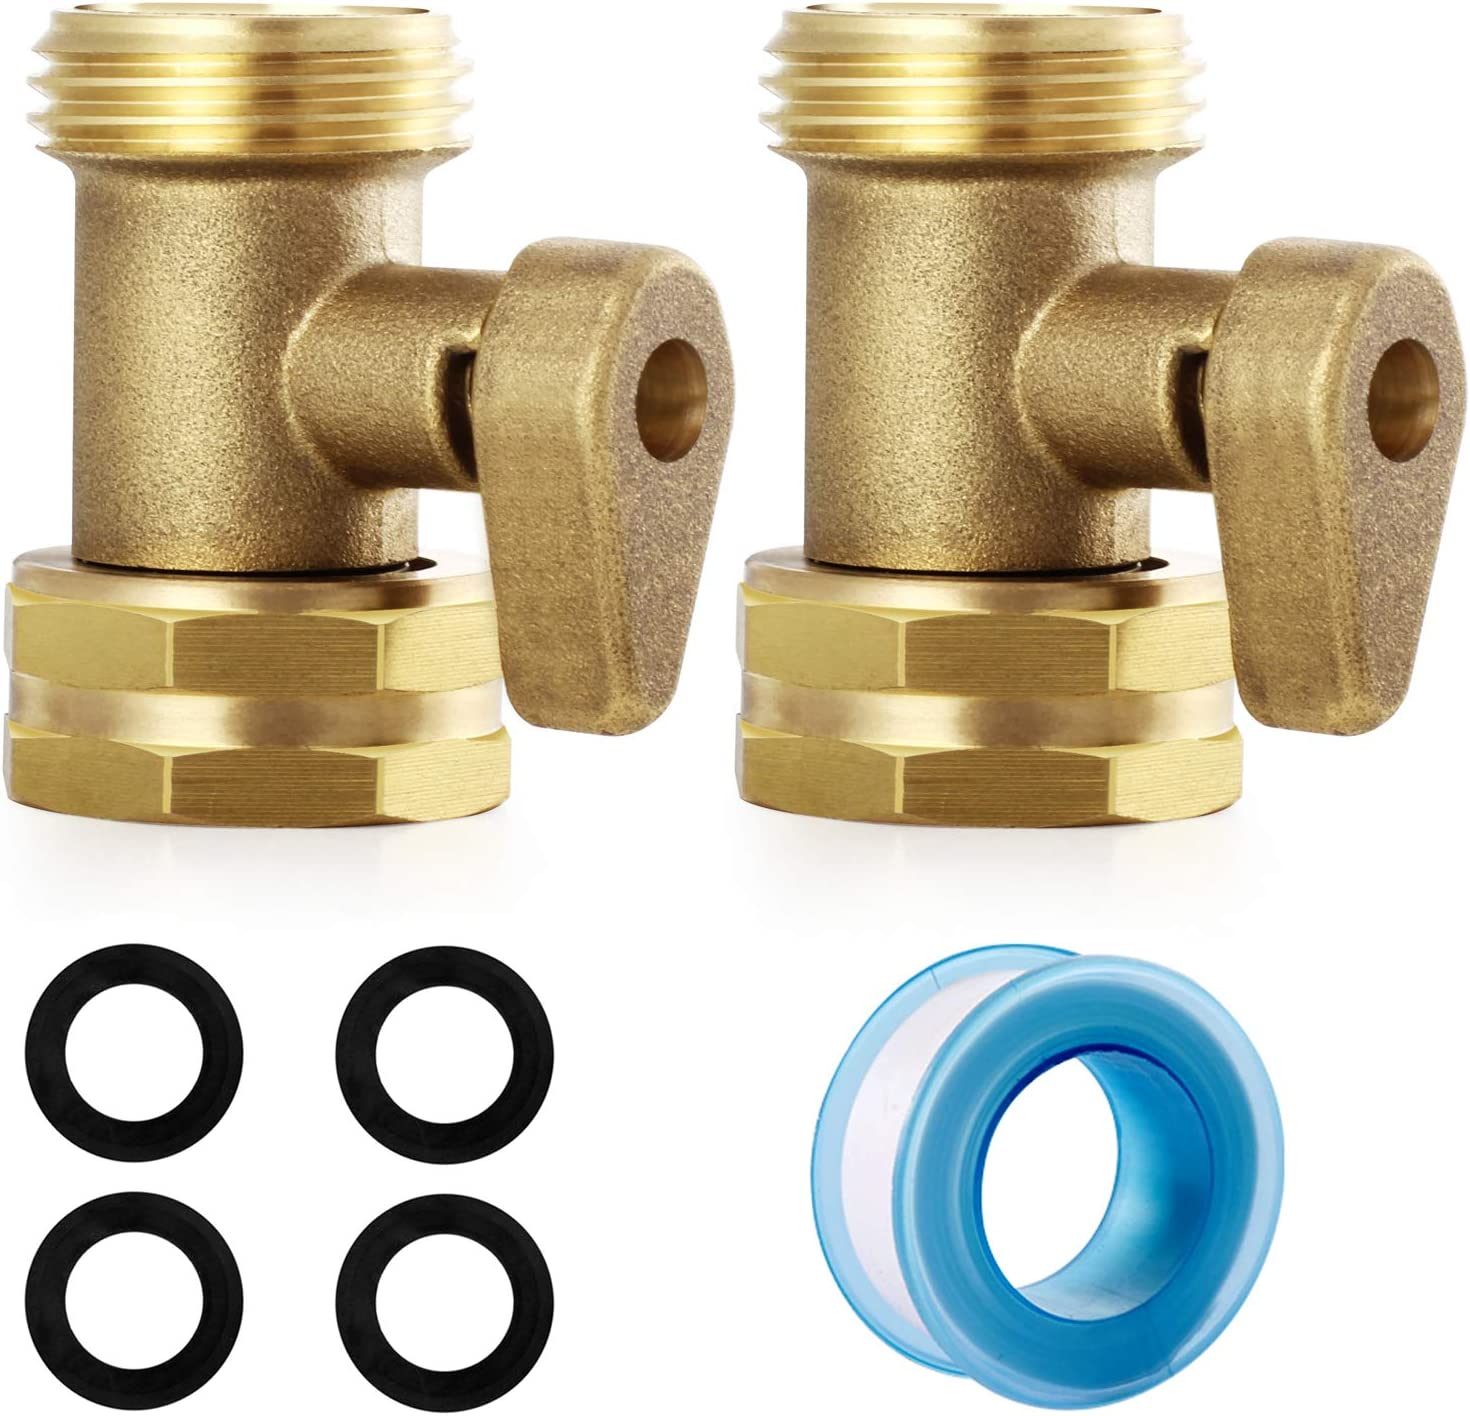 YELUN Heavy Duty Brass Shut Off Valve Garden Hose Valve,Nozzle Hose Connections Garden Hose Shut Off Valve 2Set